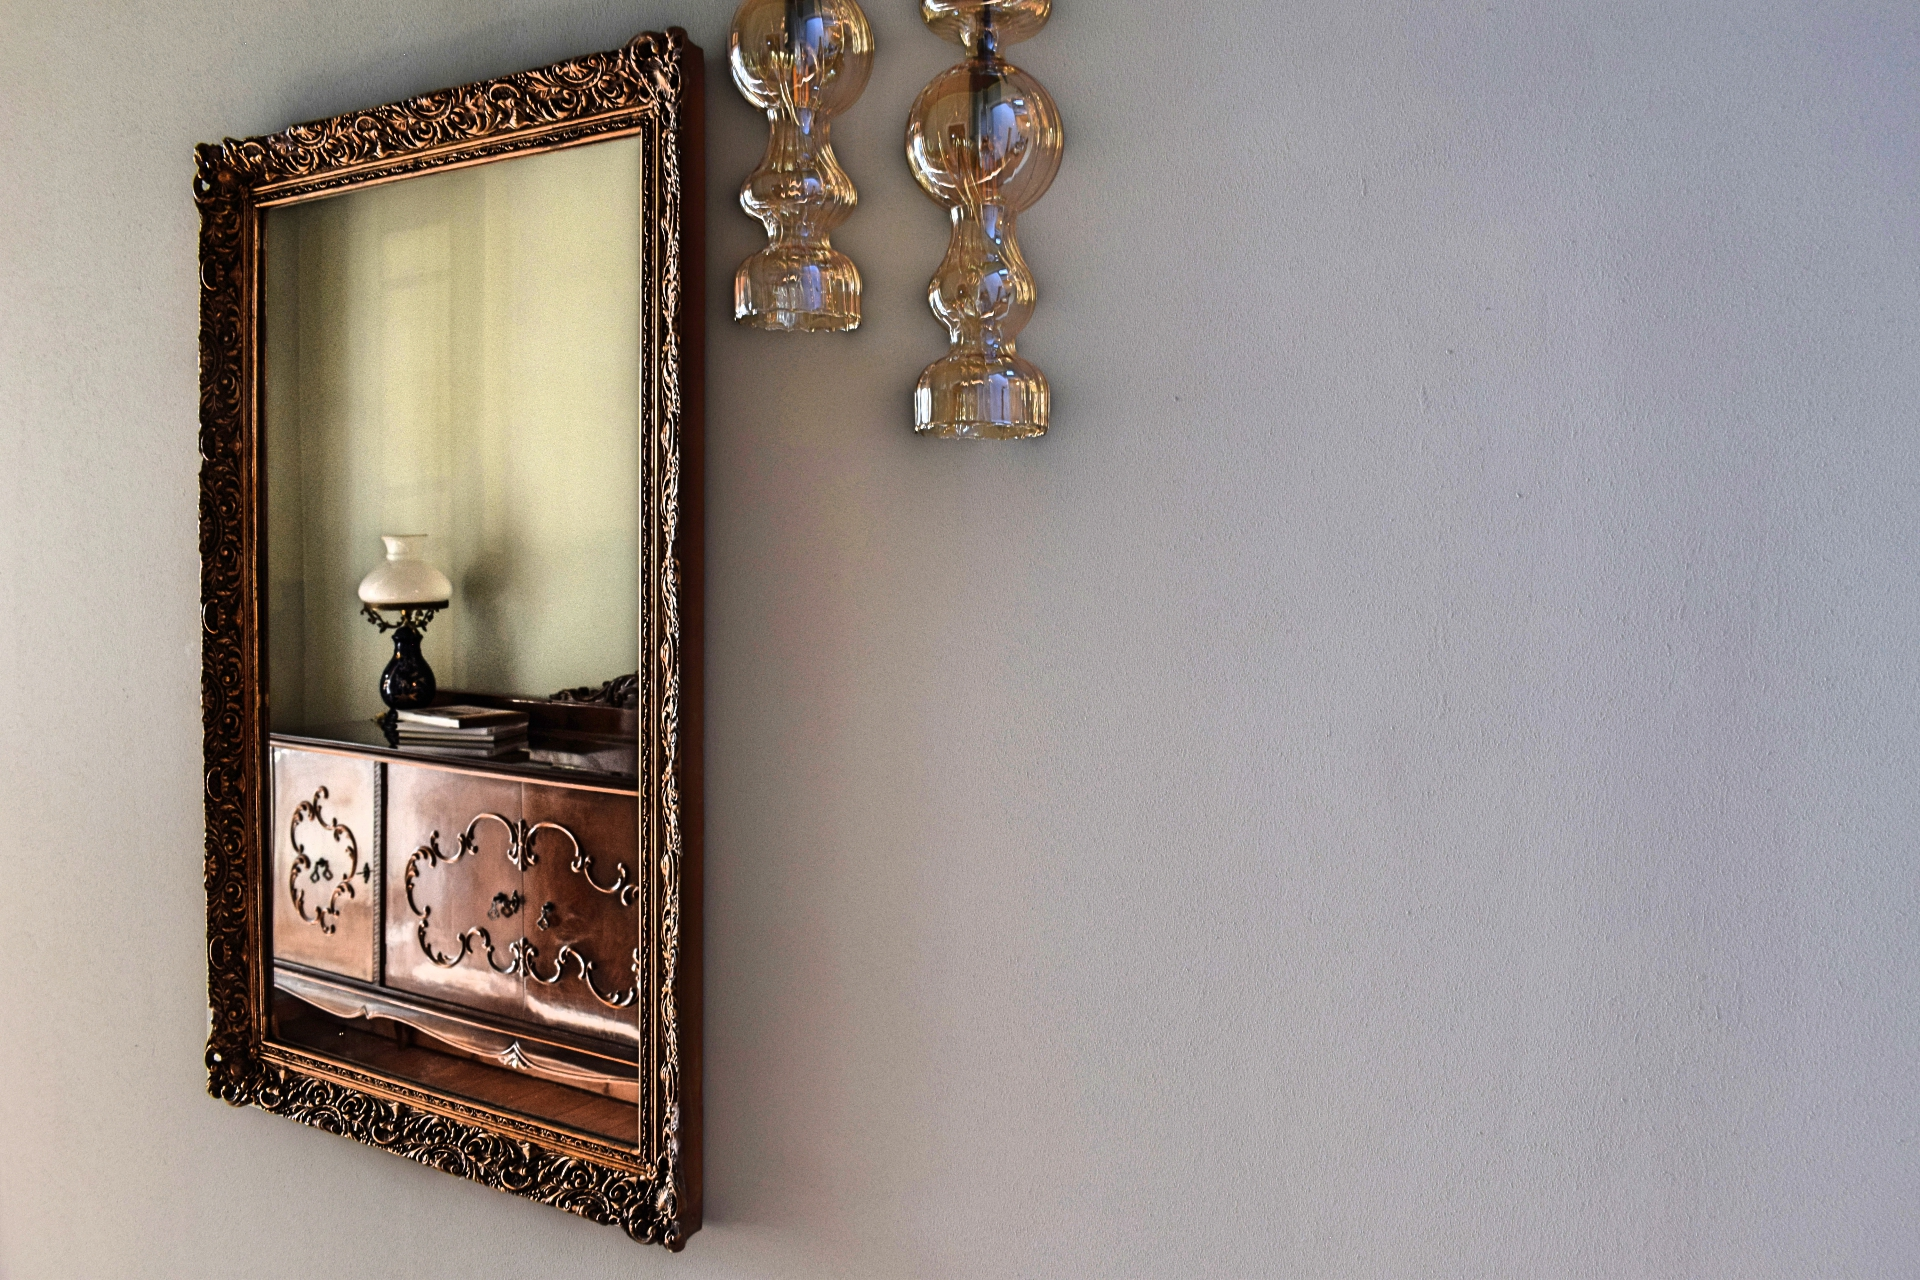 Details Mirror - Agora Residence - Hotel in Chios